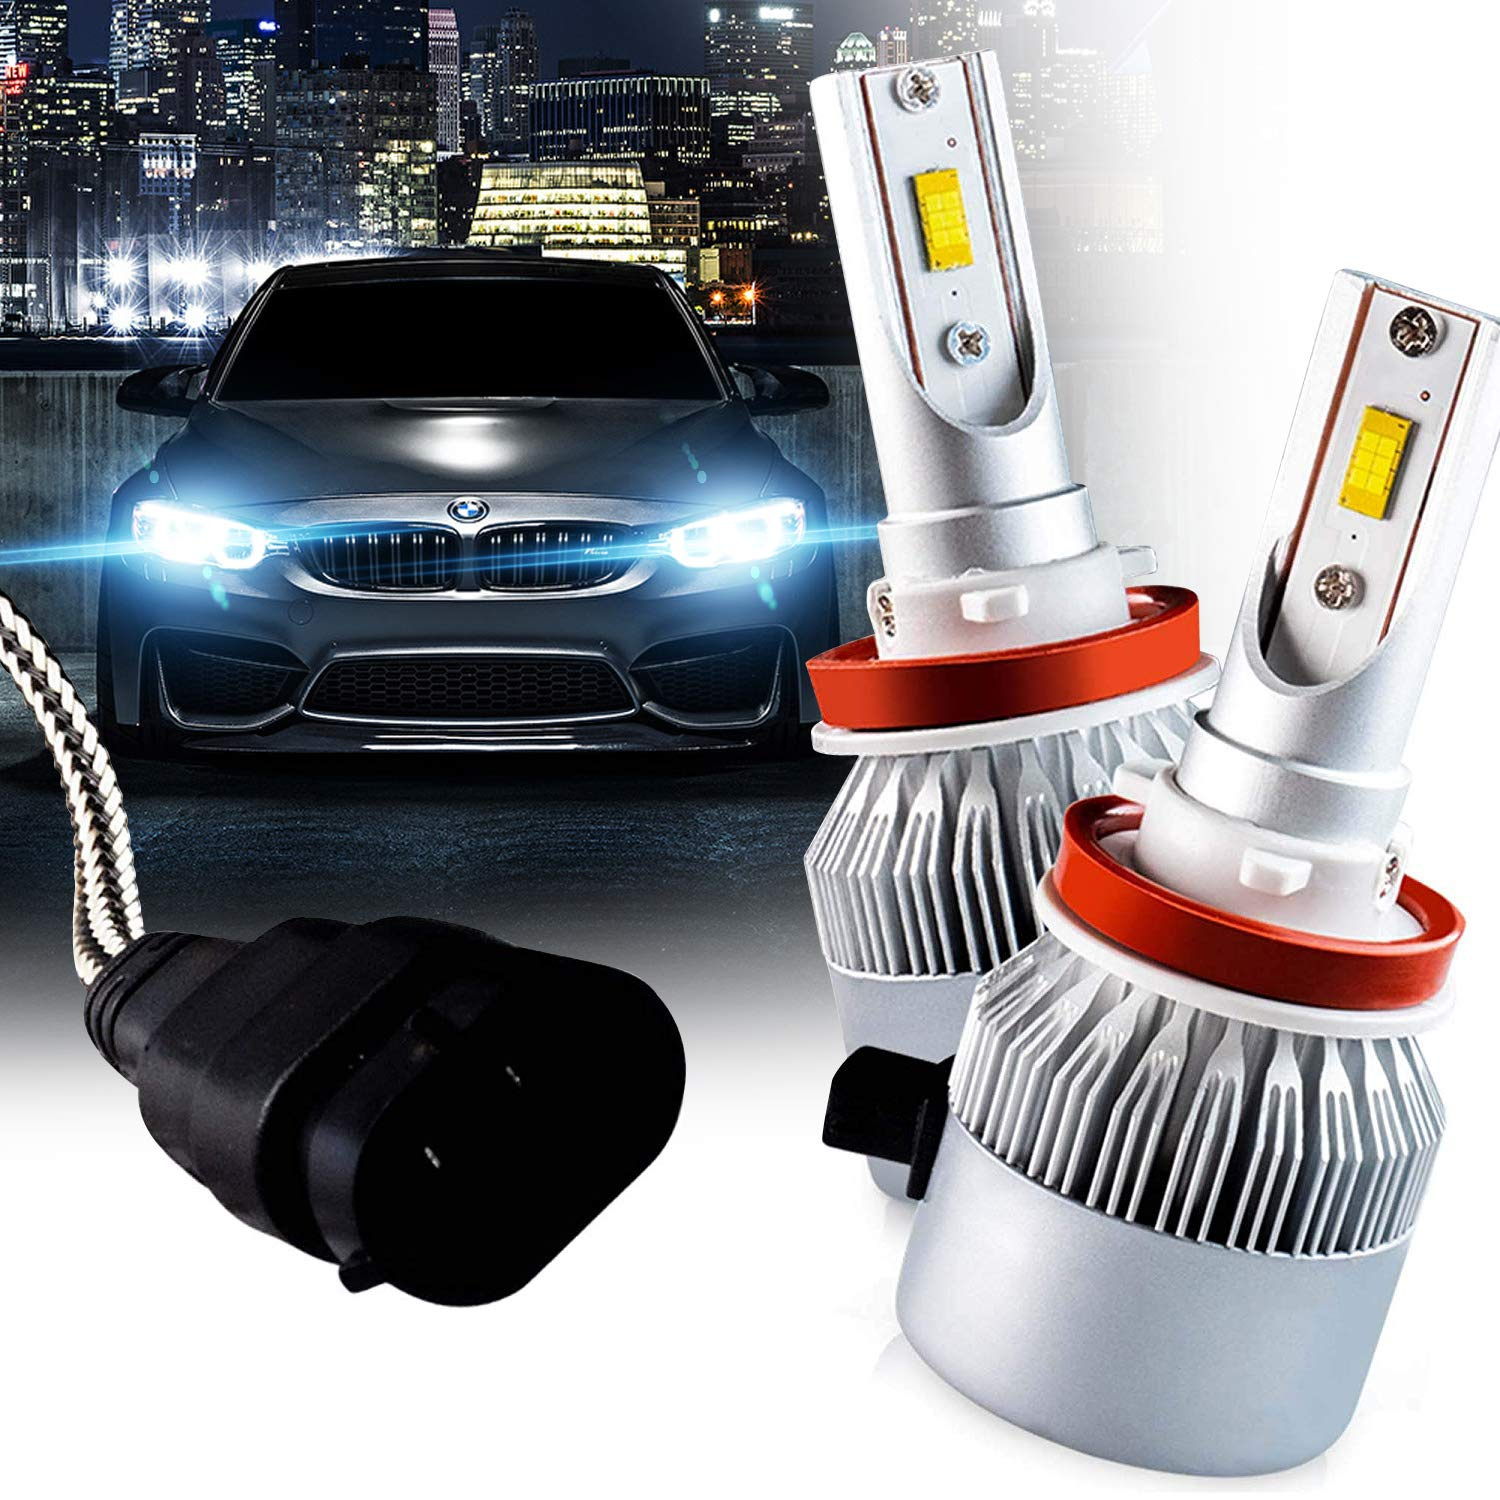 Brightt LED Headlight Bulbs Conversion Kit (9004-HL/HB1) (pack of 2) High-Power Restoration Kit, 200% Brighter than Stock Headlights – 50,000 Hours Continuous Use, 8000 Lumens, 6000k White